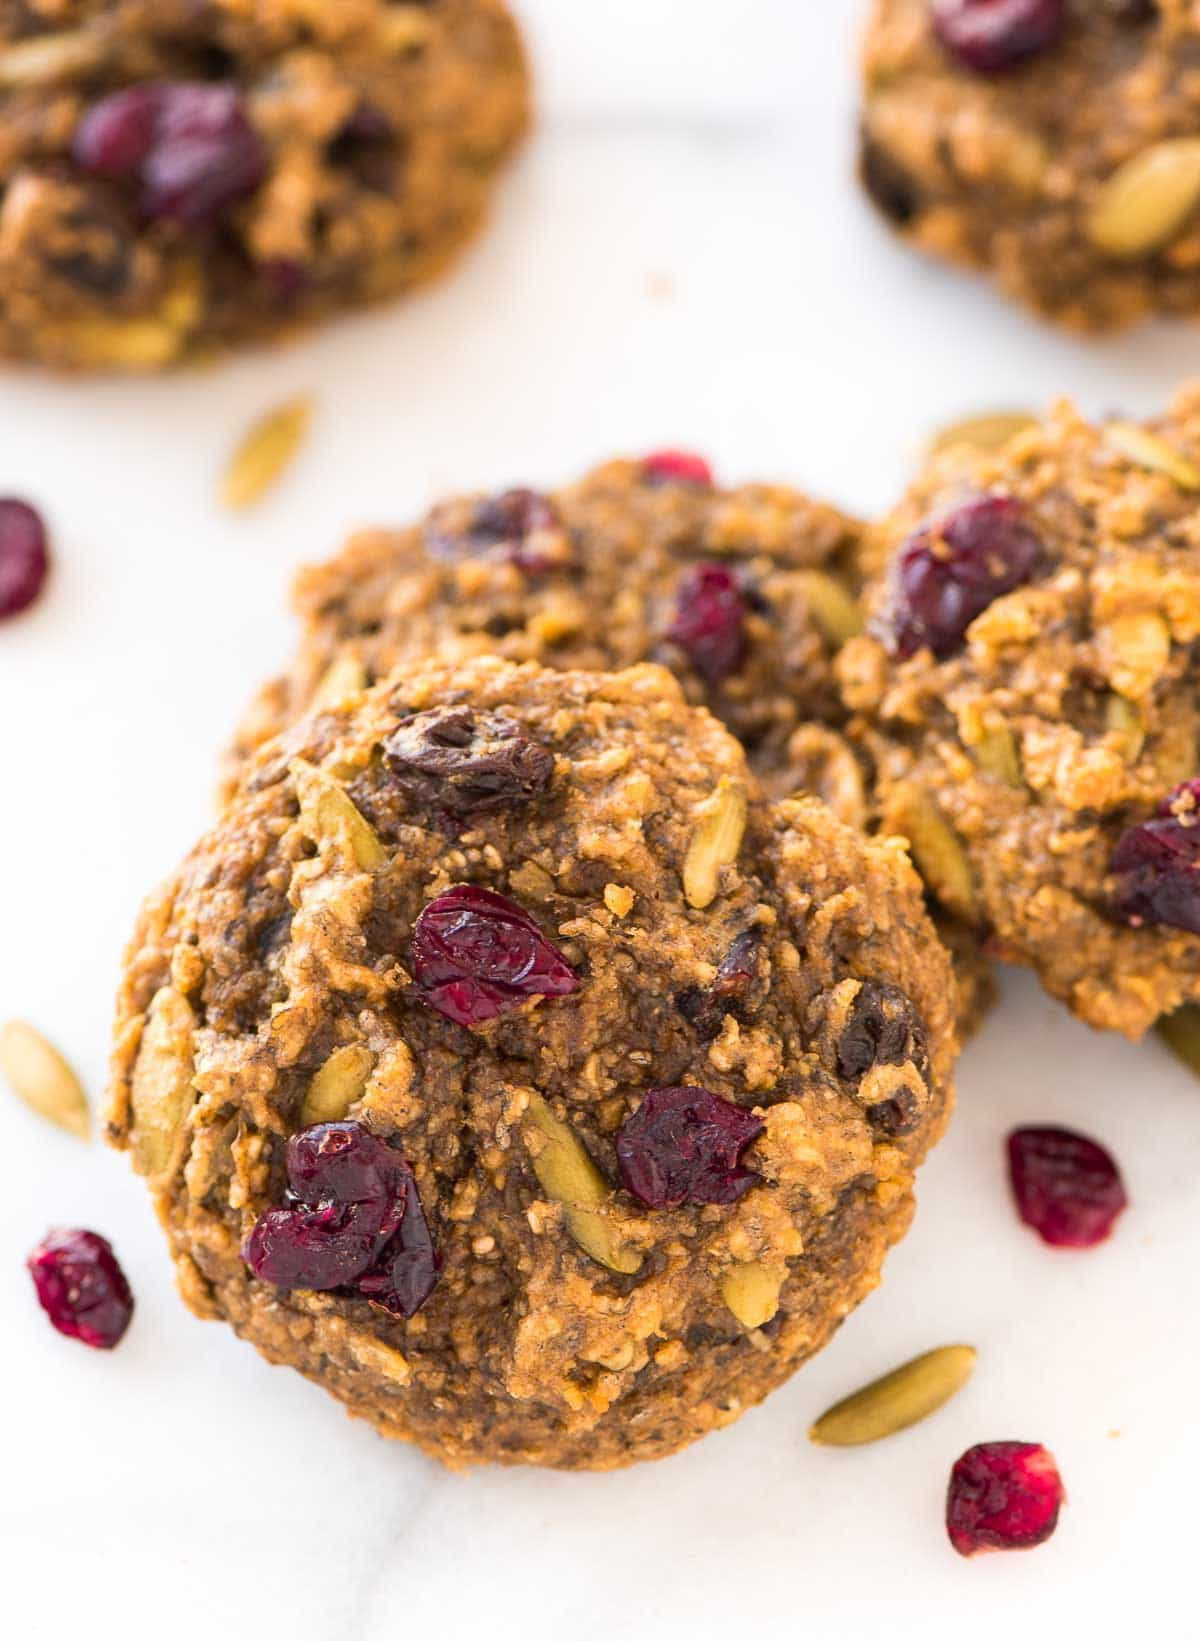 Peanut Butter Protein Cookies with banana, pumpkin seeds, and oatmeal. Add chocolate chips or any of your favorite mix-ins! Easy and gluten free. Recipe at wellplated.com   @wellplated